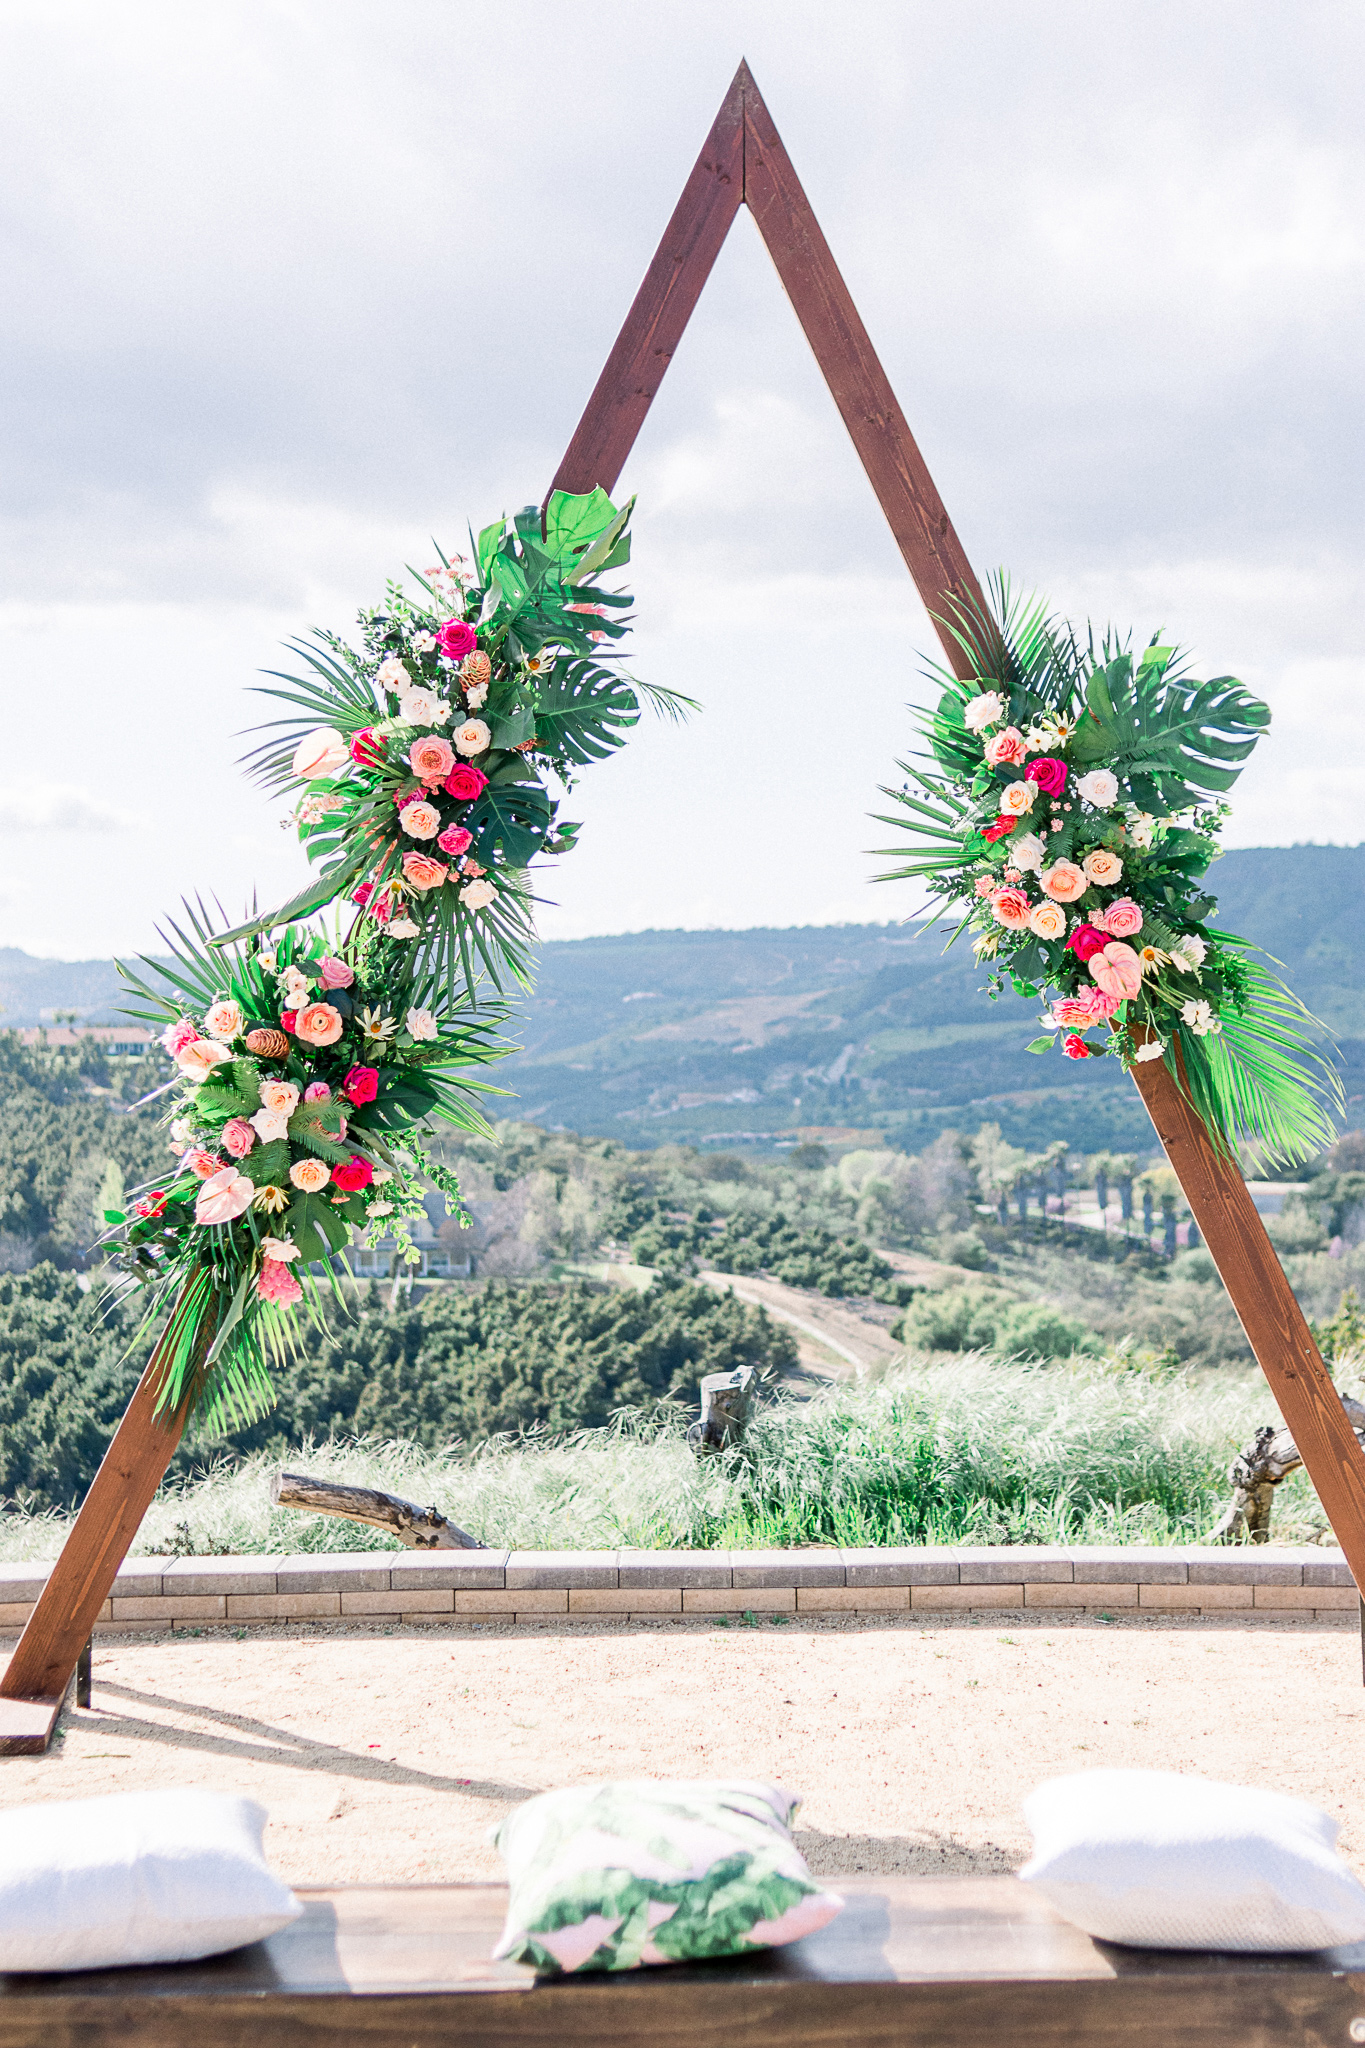 emerald-peak-temecula-wedding-ceremony-arch-in-a-deep-red-wood-in-a-triangle-shape-with-flowers-on-it